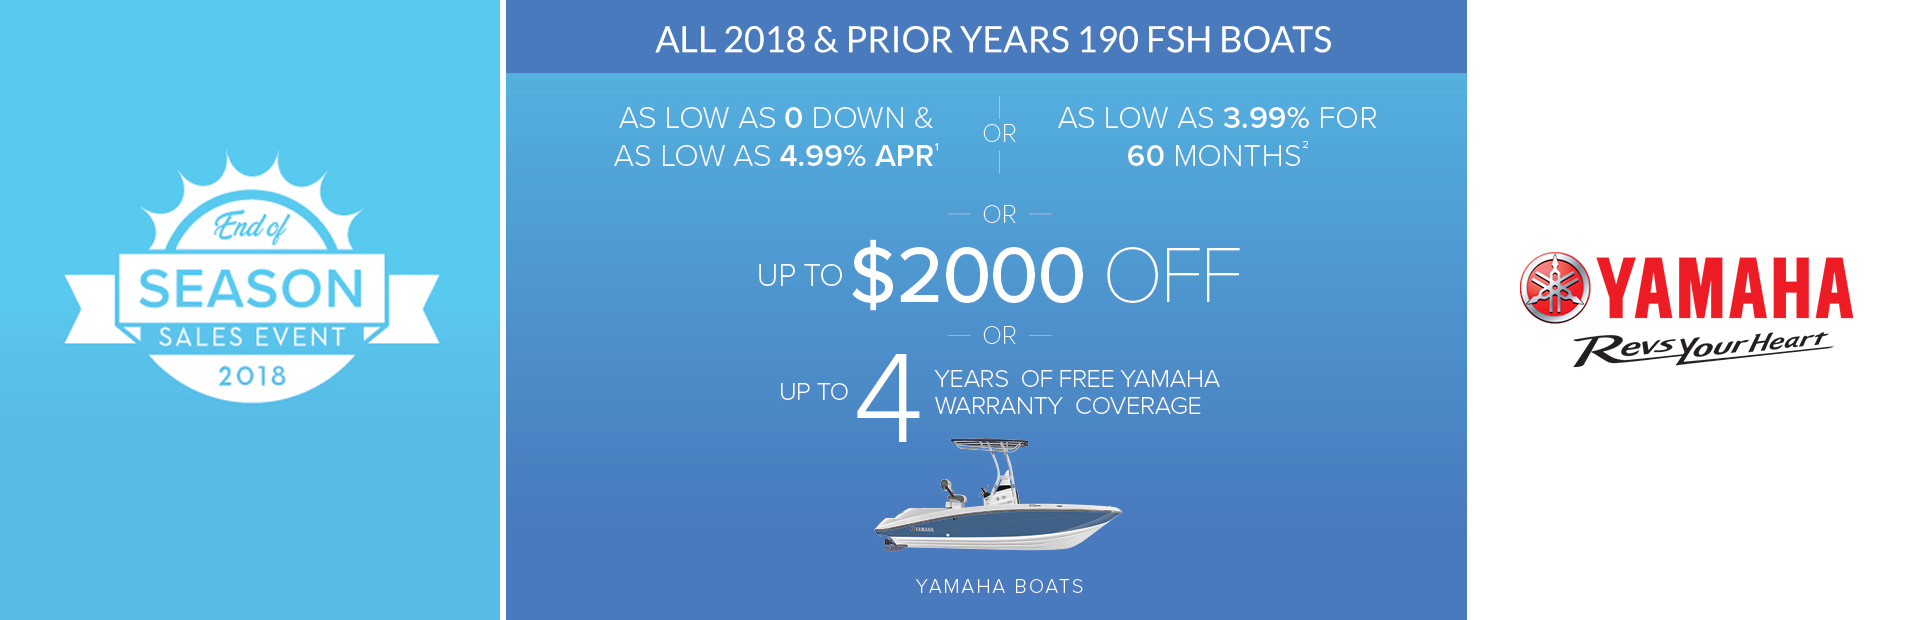 Yamaha: End of Season Sales Event - 2018 and Prior 190 FSH